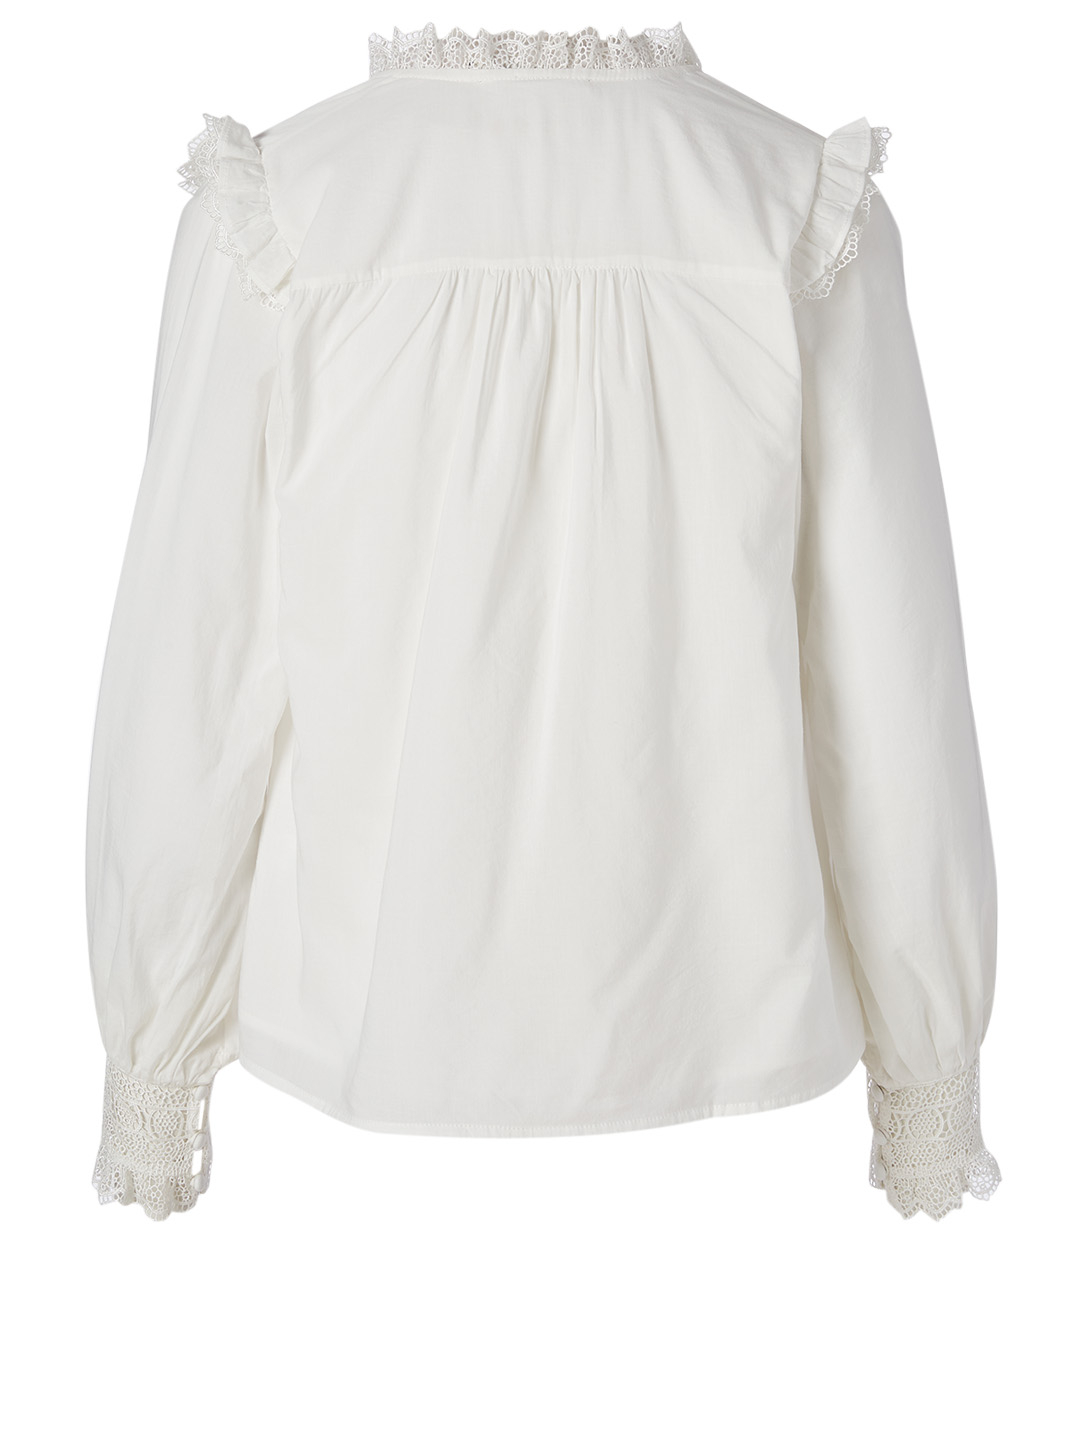 MAGALI PASCAL Henriette Button-Up Top With Lace H Project White